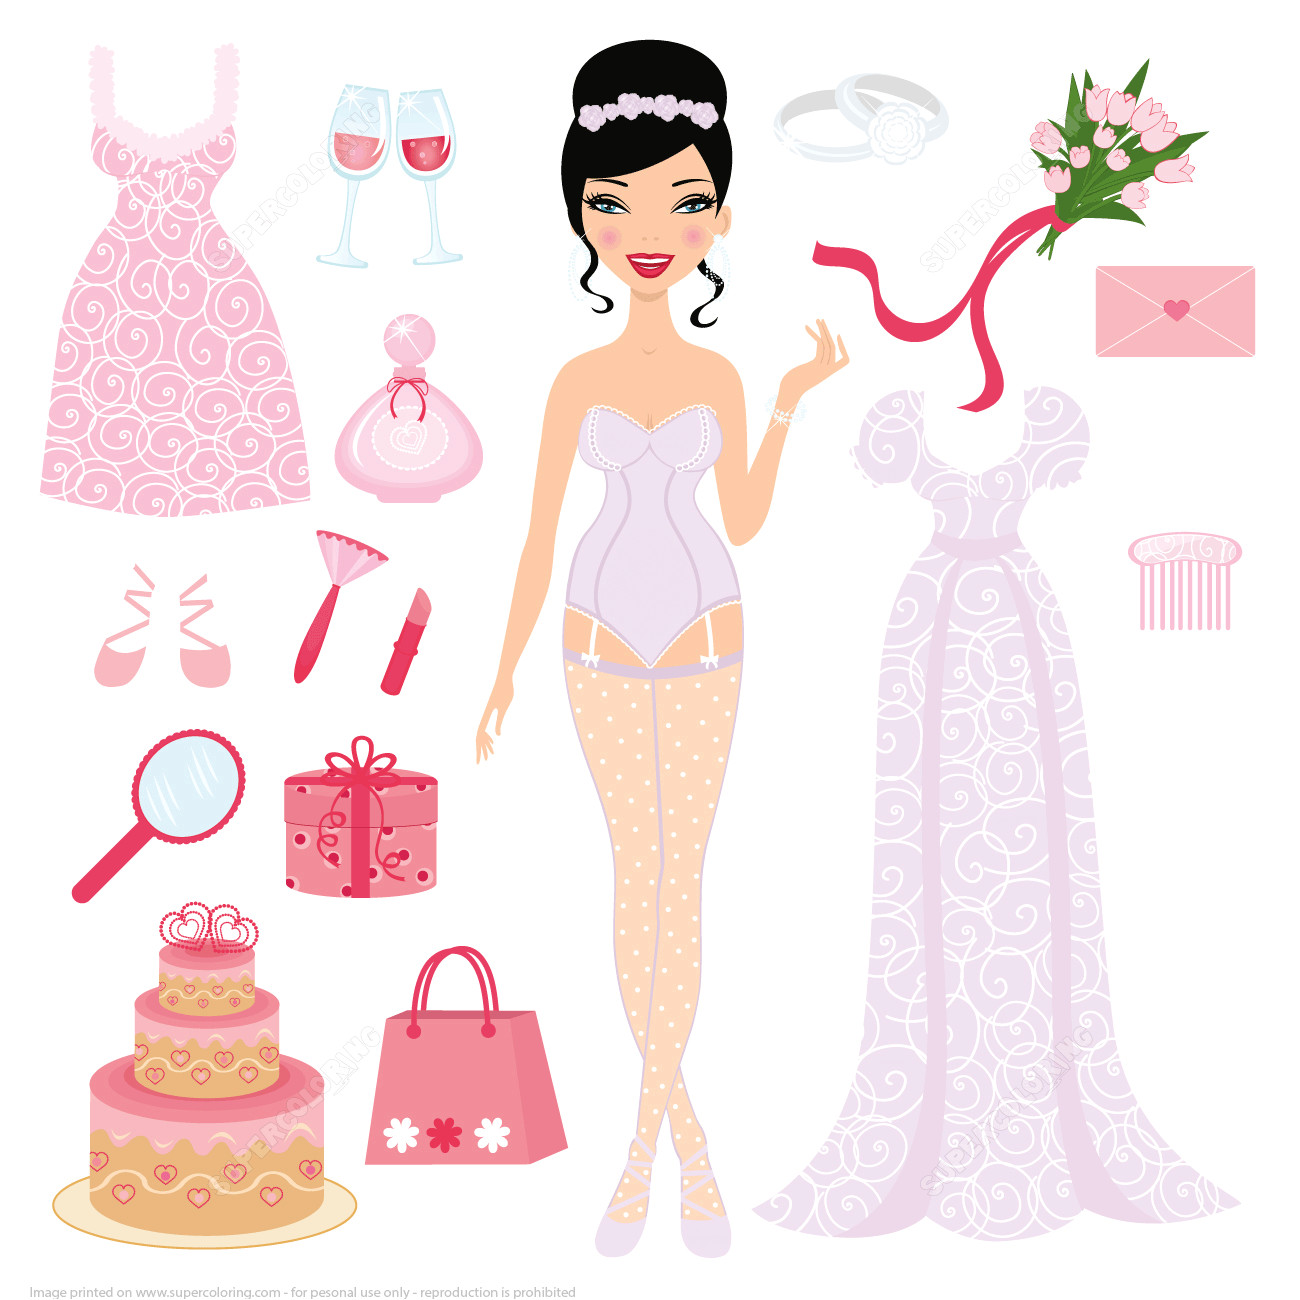 dress up bride paper doll for wedding ceremony